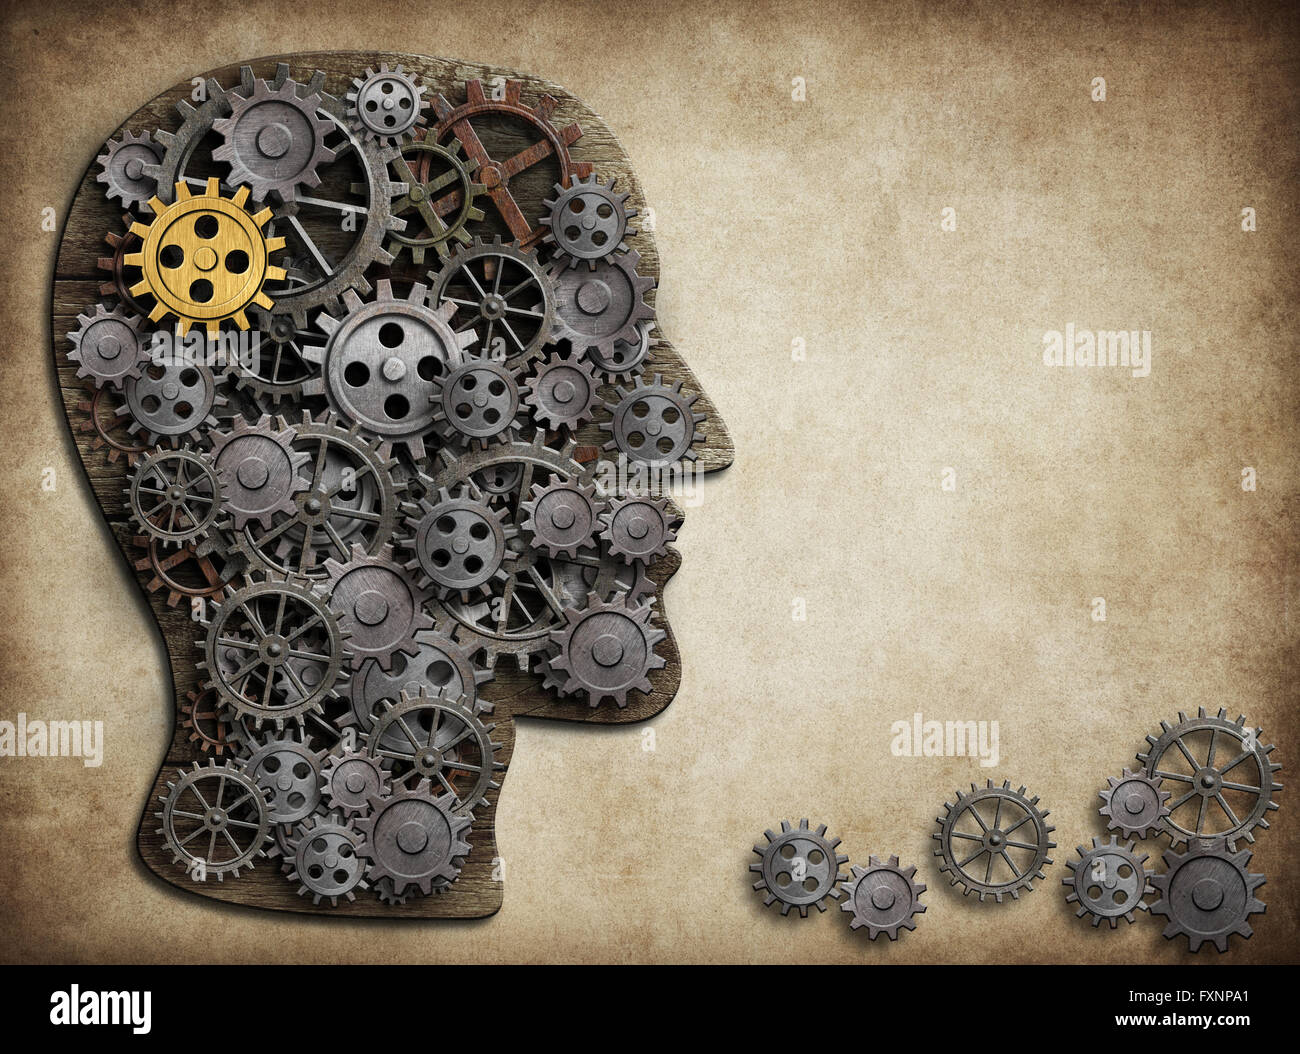 Brain gears and cogs, idea concept. - Stock Image